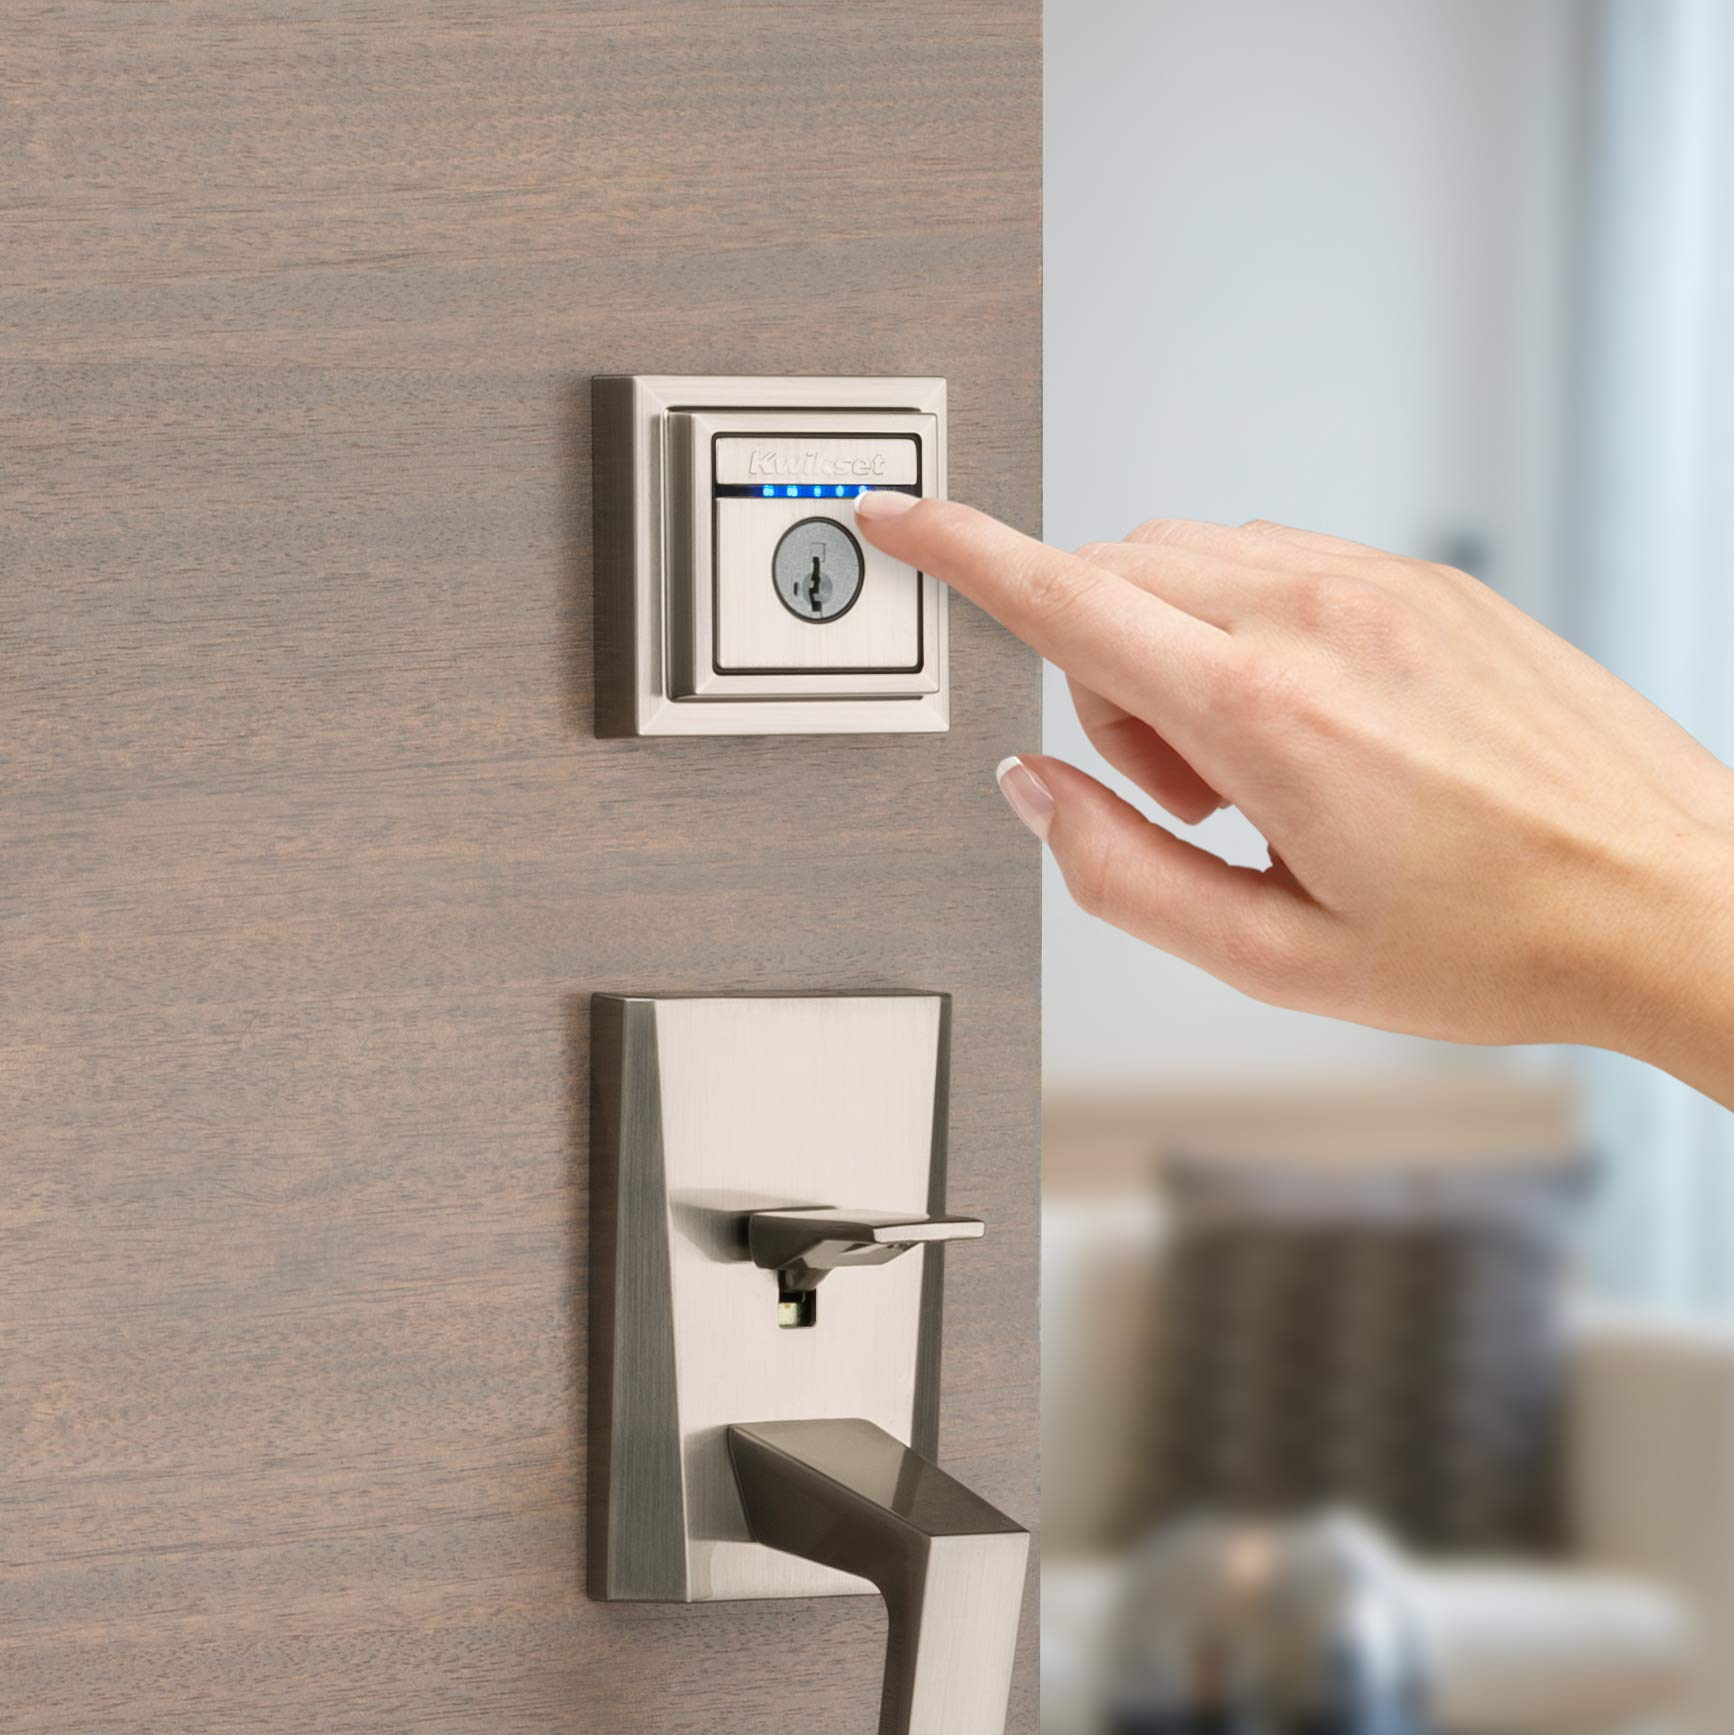 Kwikset 99250-206 Kevo 2nd Gen Contemporary Square Single Cylinder Touch-to-Open Bluetooth Deadbolt Satin Nickel by Kwikset (Image #6)